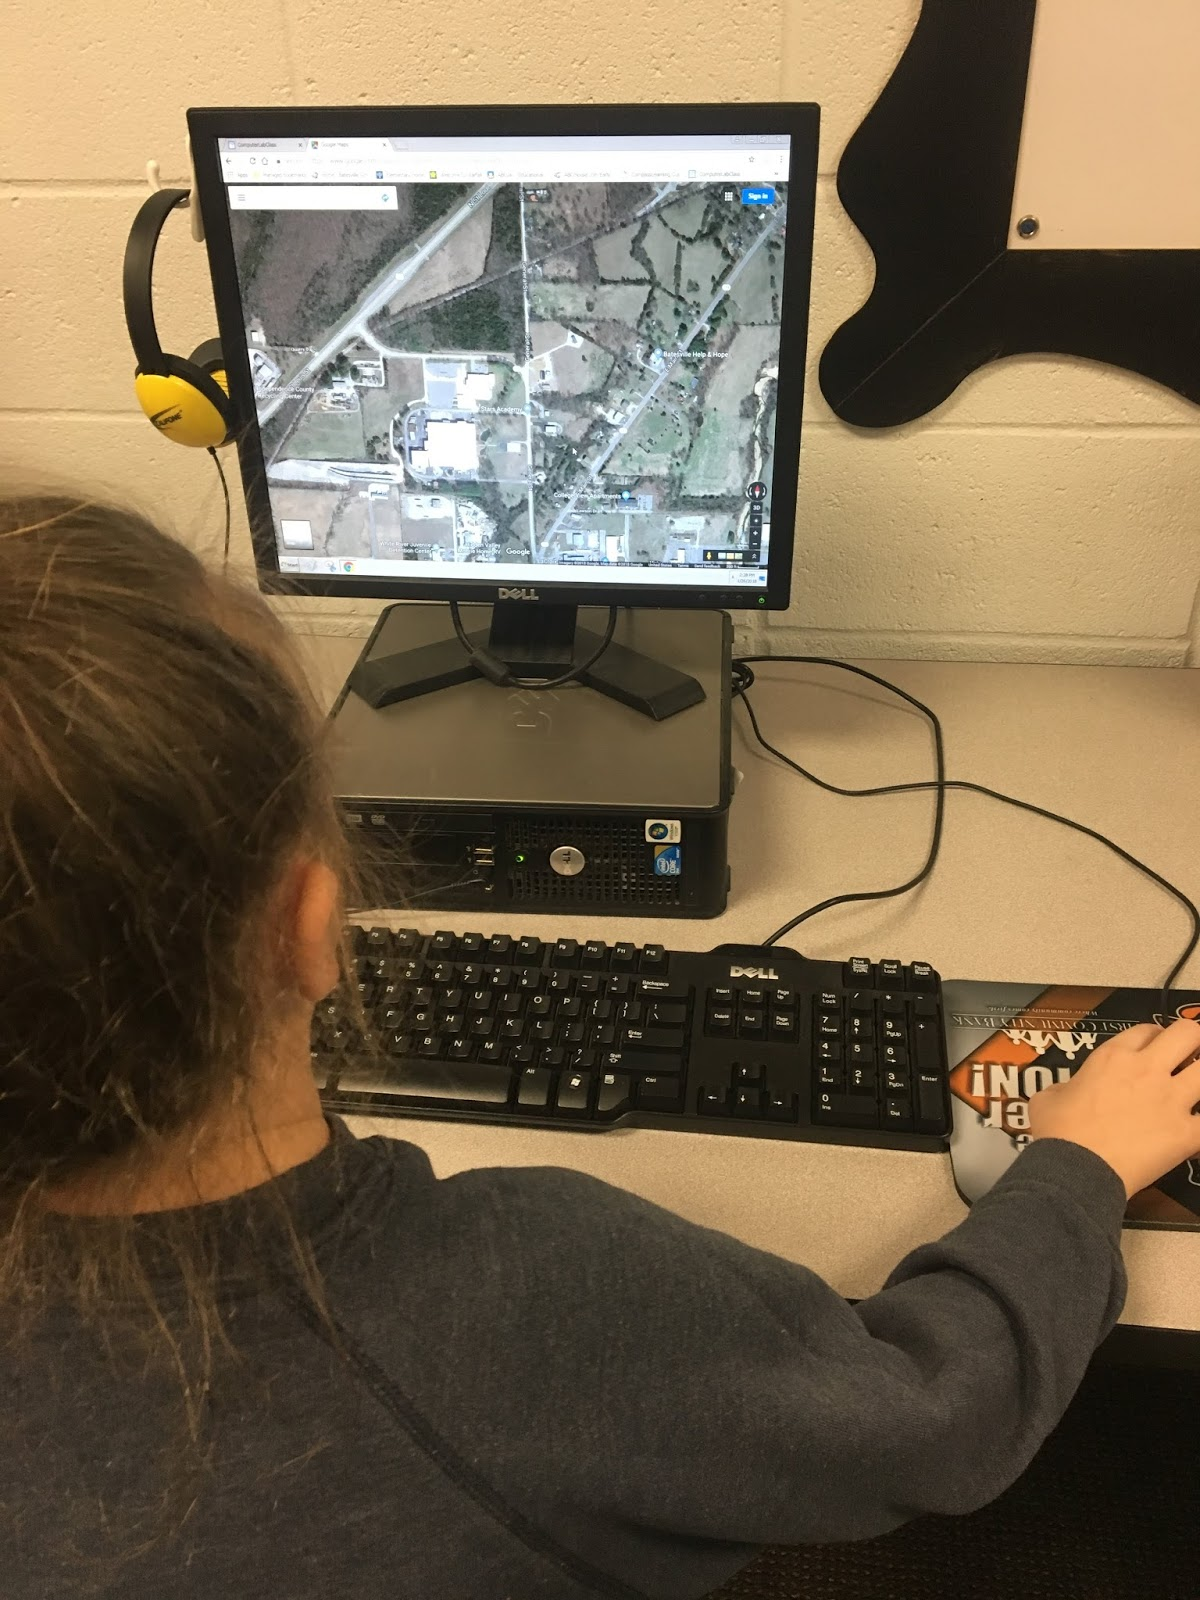 then they were able to switch to street view to find their house or the school students also used an interactive map maker to create their own map